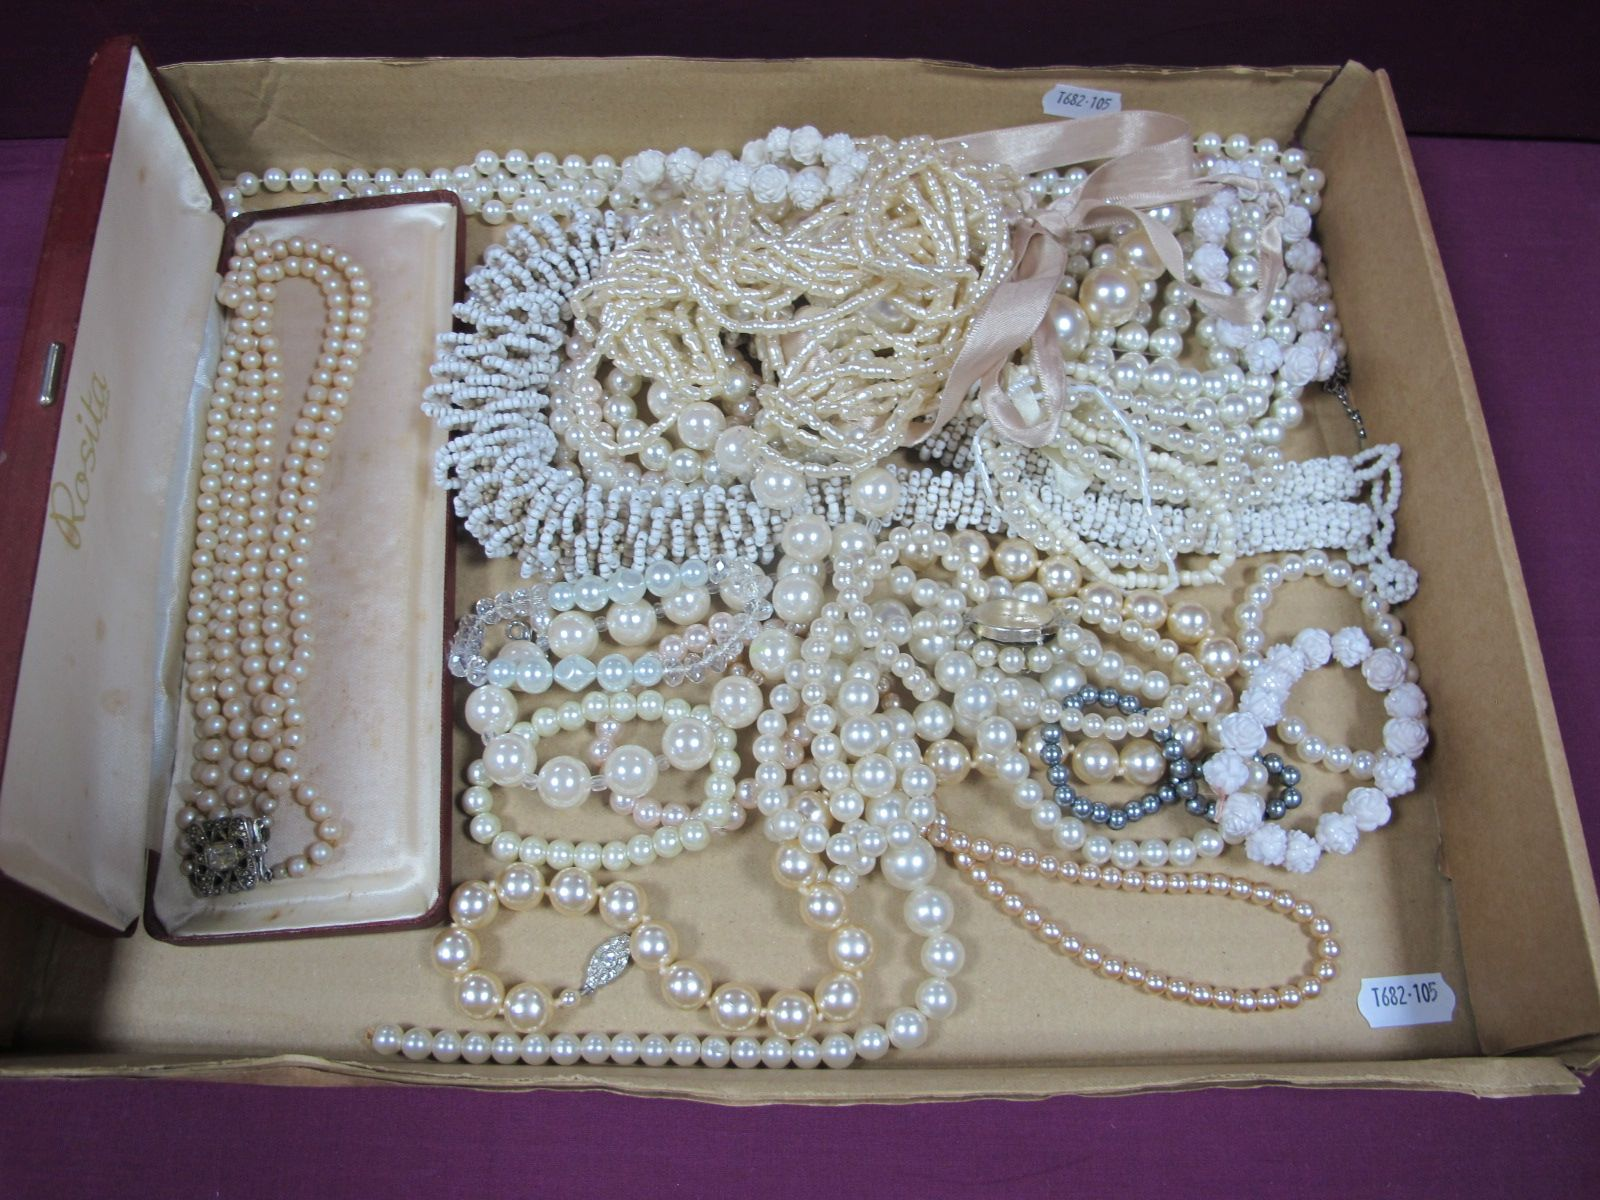 A Mixed Lot of Imitation Pearl Costume Jewellery, including bracelets, necklaces etc.